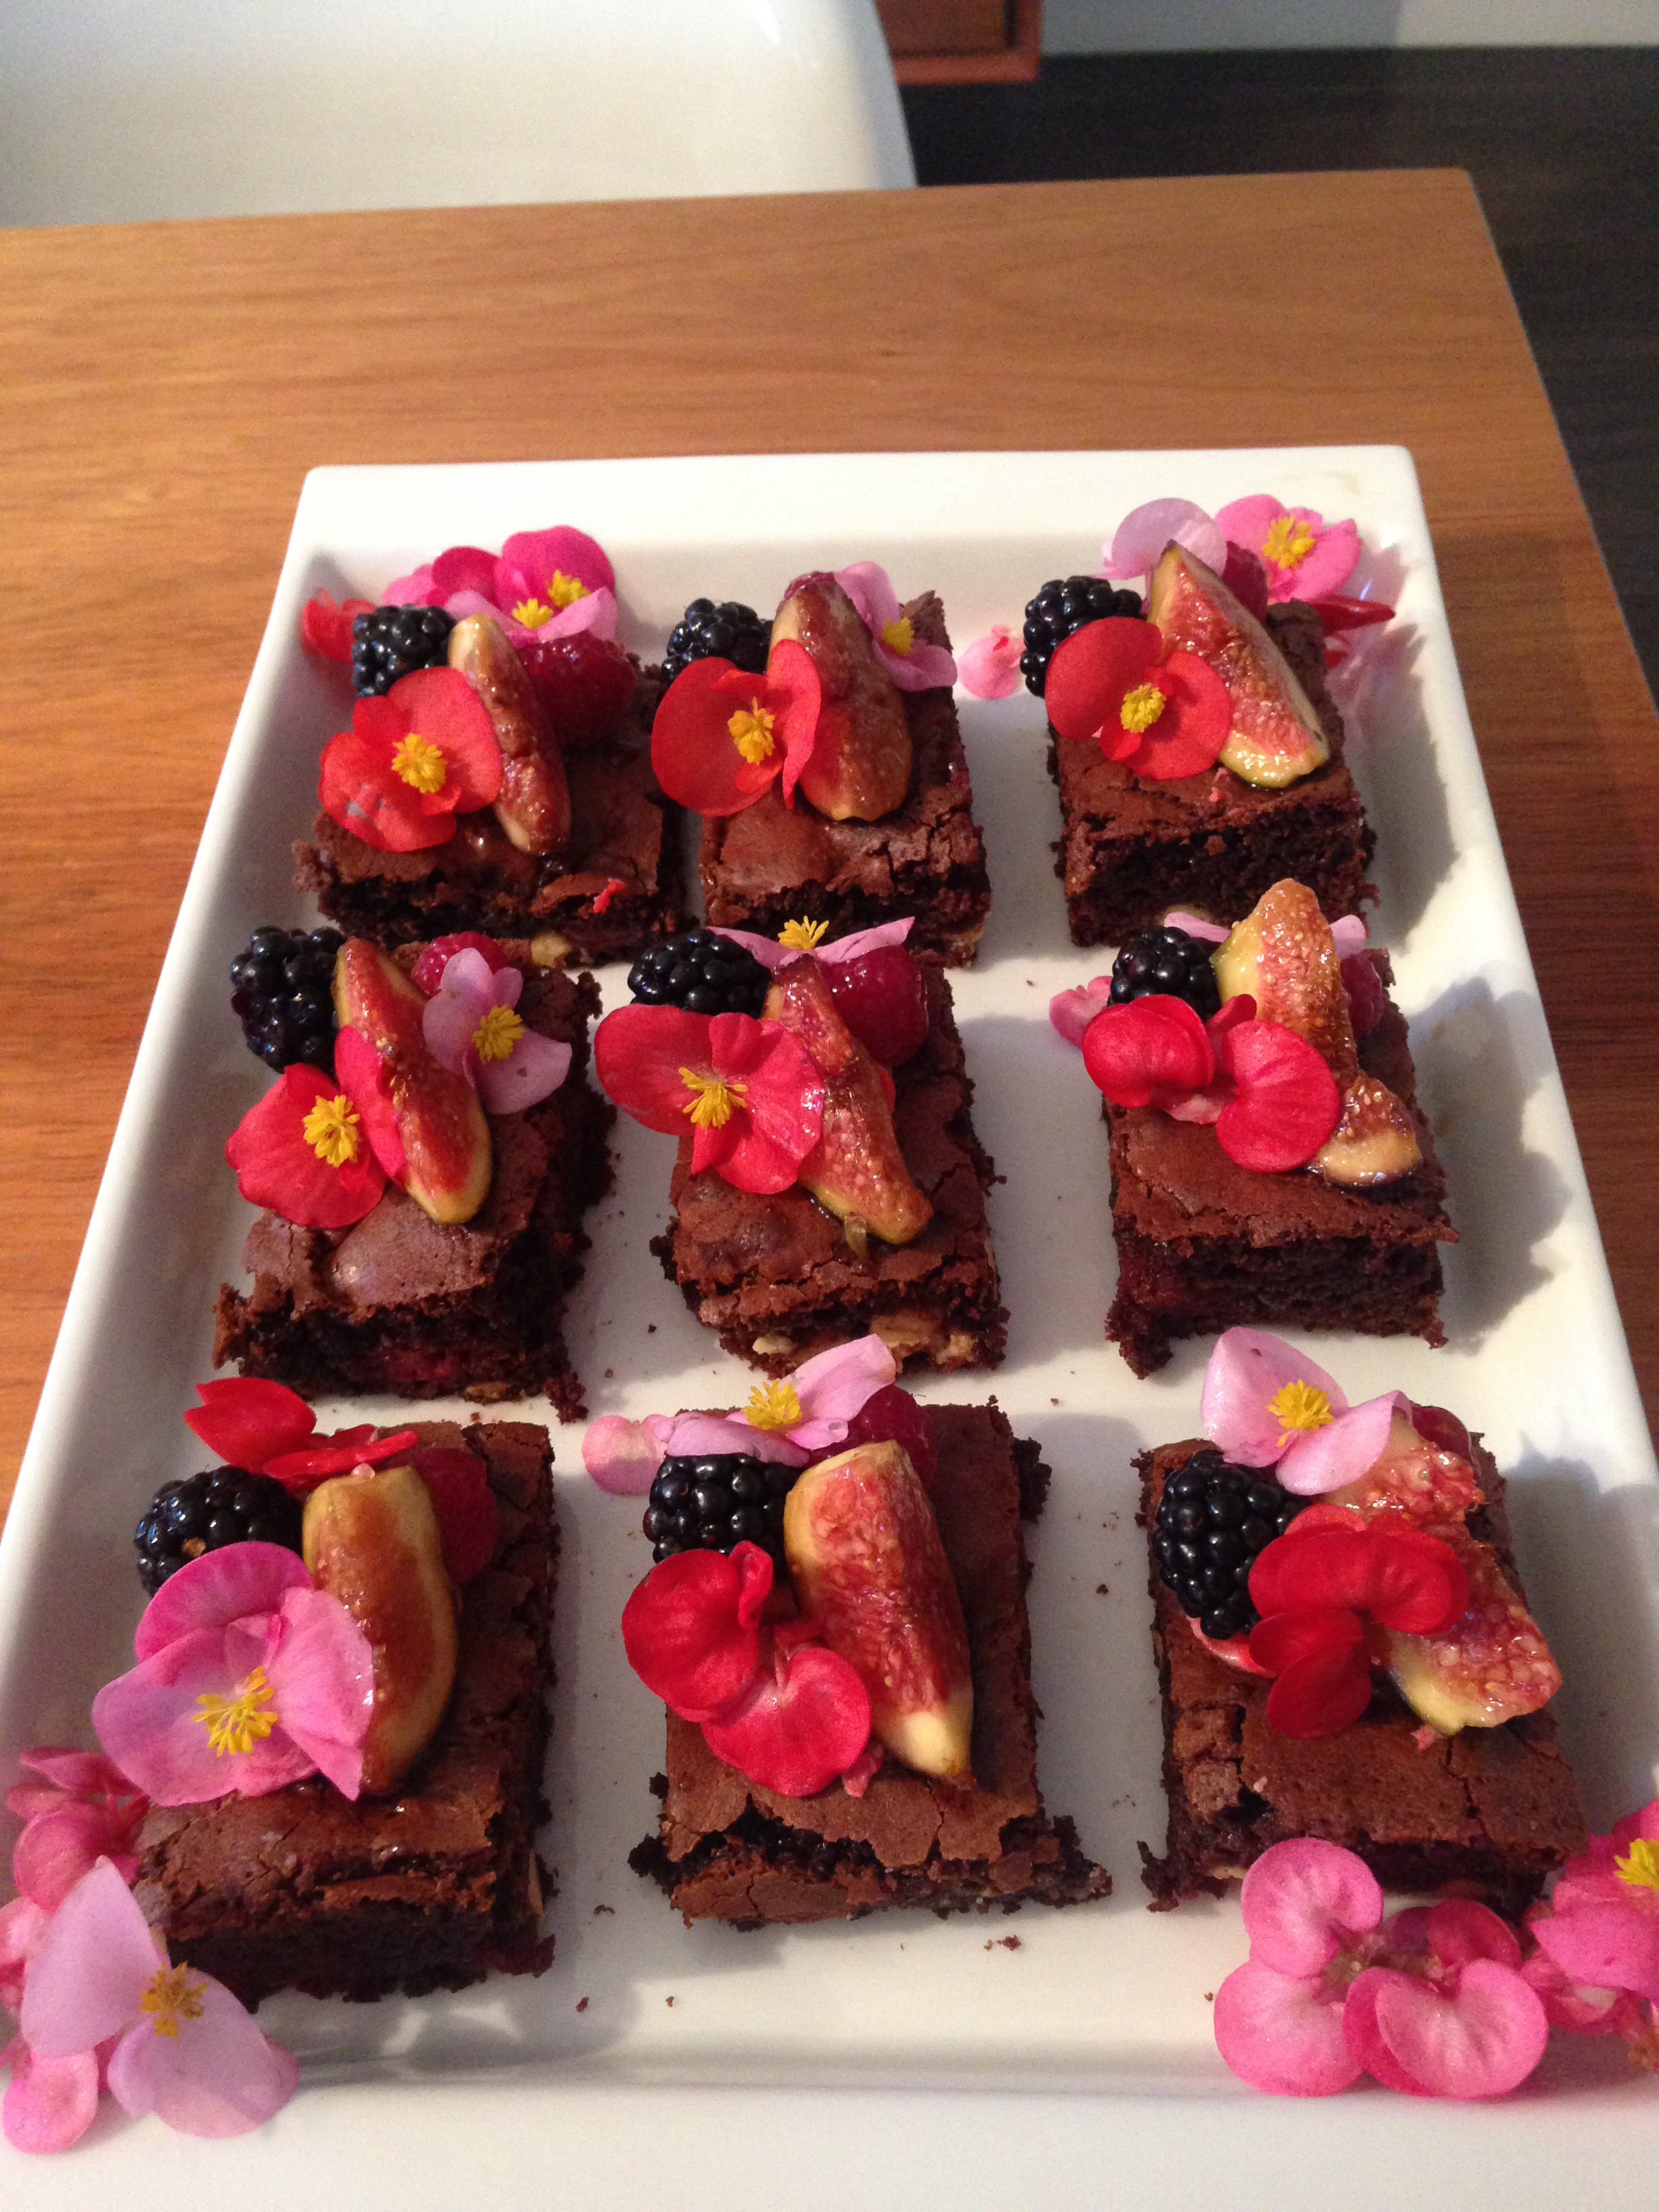 These blackberry and fig brownies went down a treat last year!